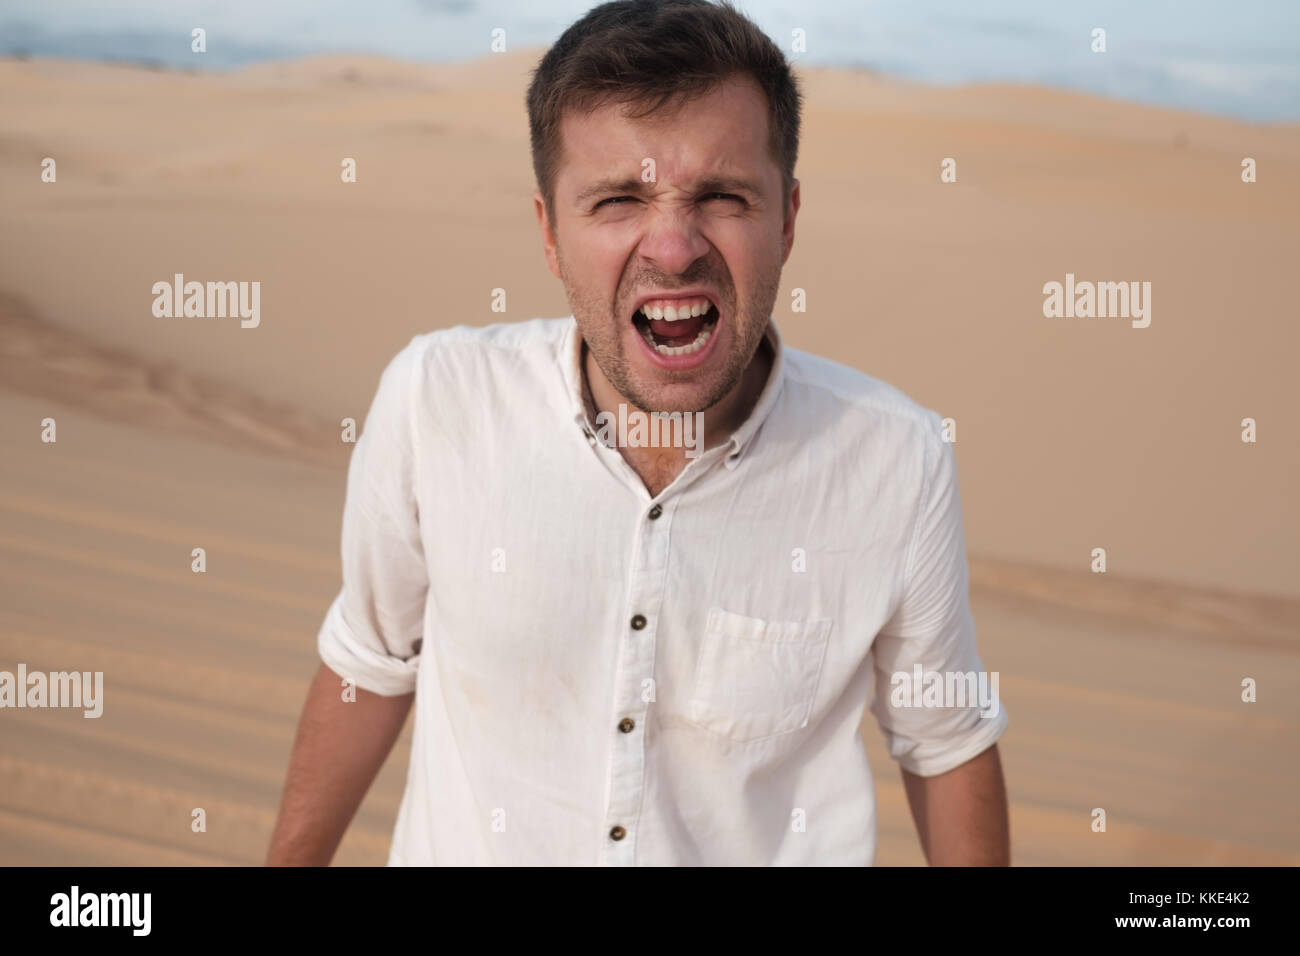 angry man shouting accusing someone standing in desert - Stock Image